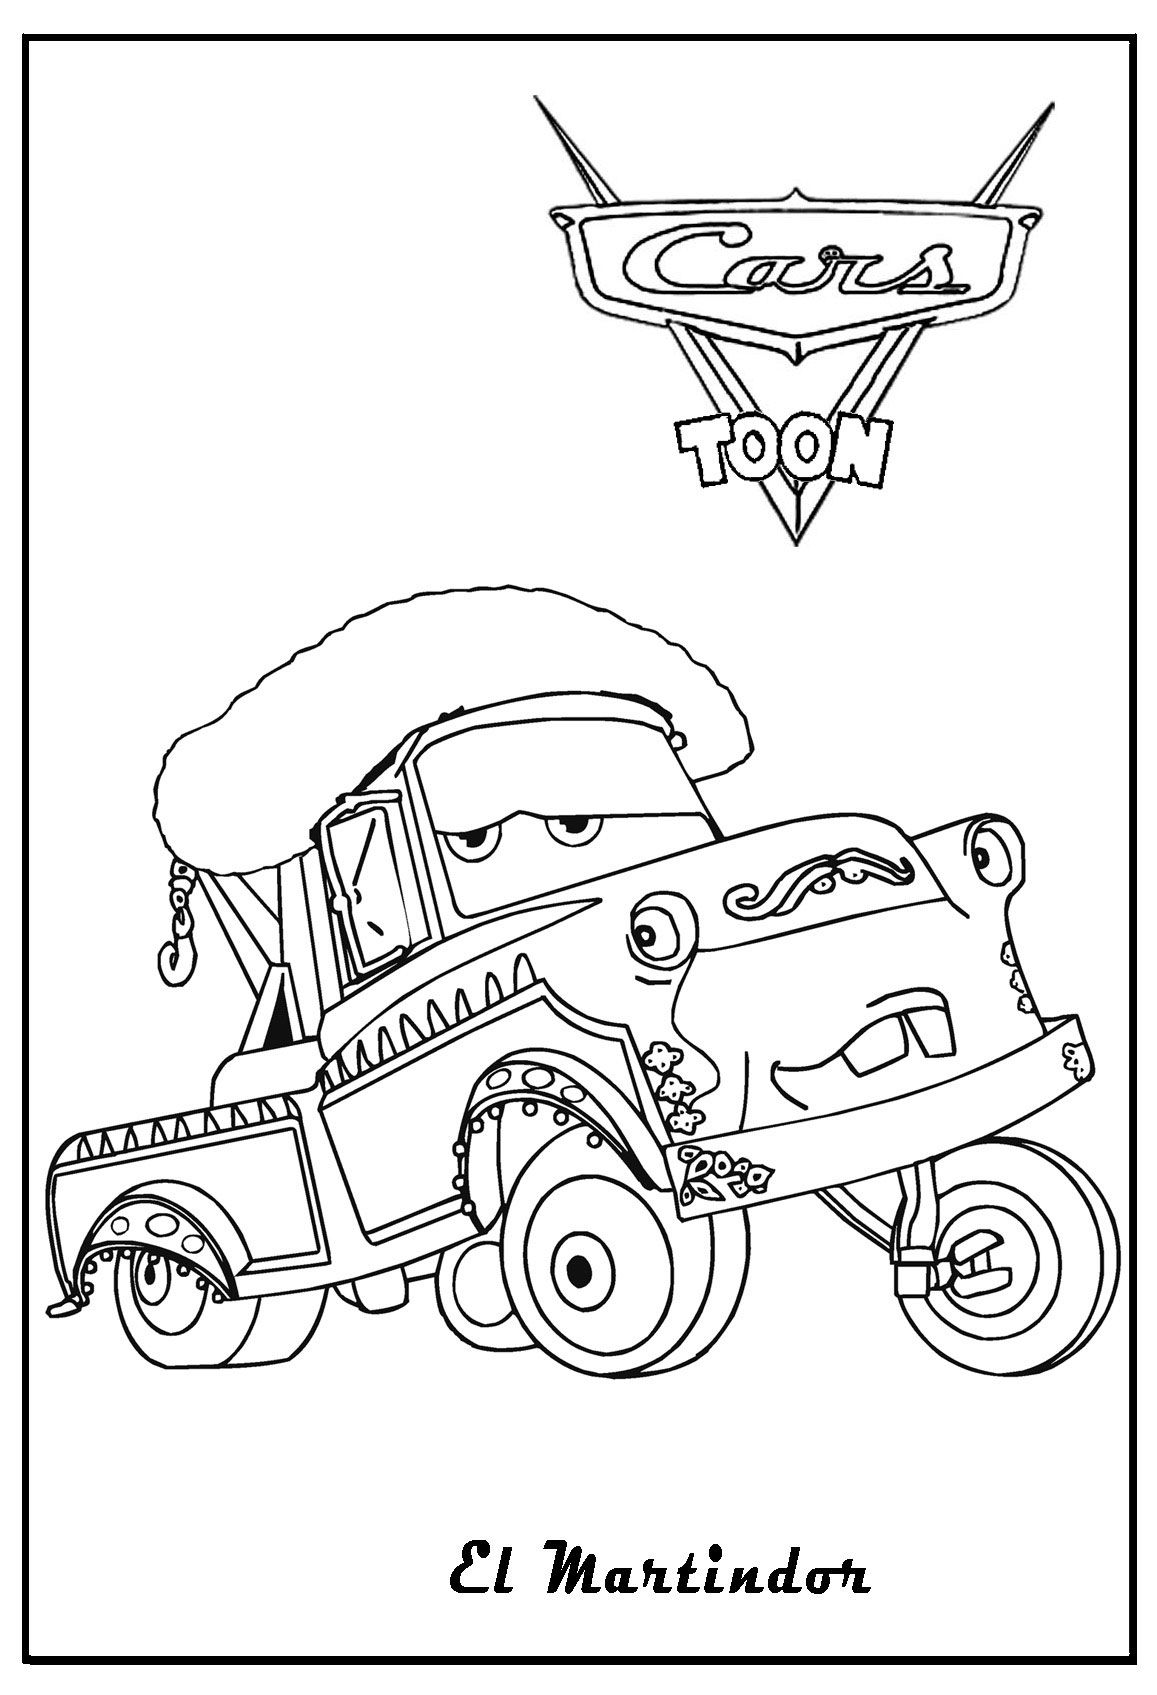 Cars 2 Printable Coloring Pages Cars Coloring El Materdor Cars Coloring Miles Axlerod Cars Coloring